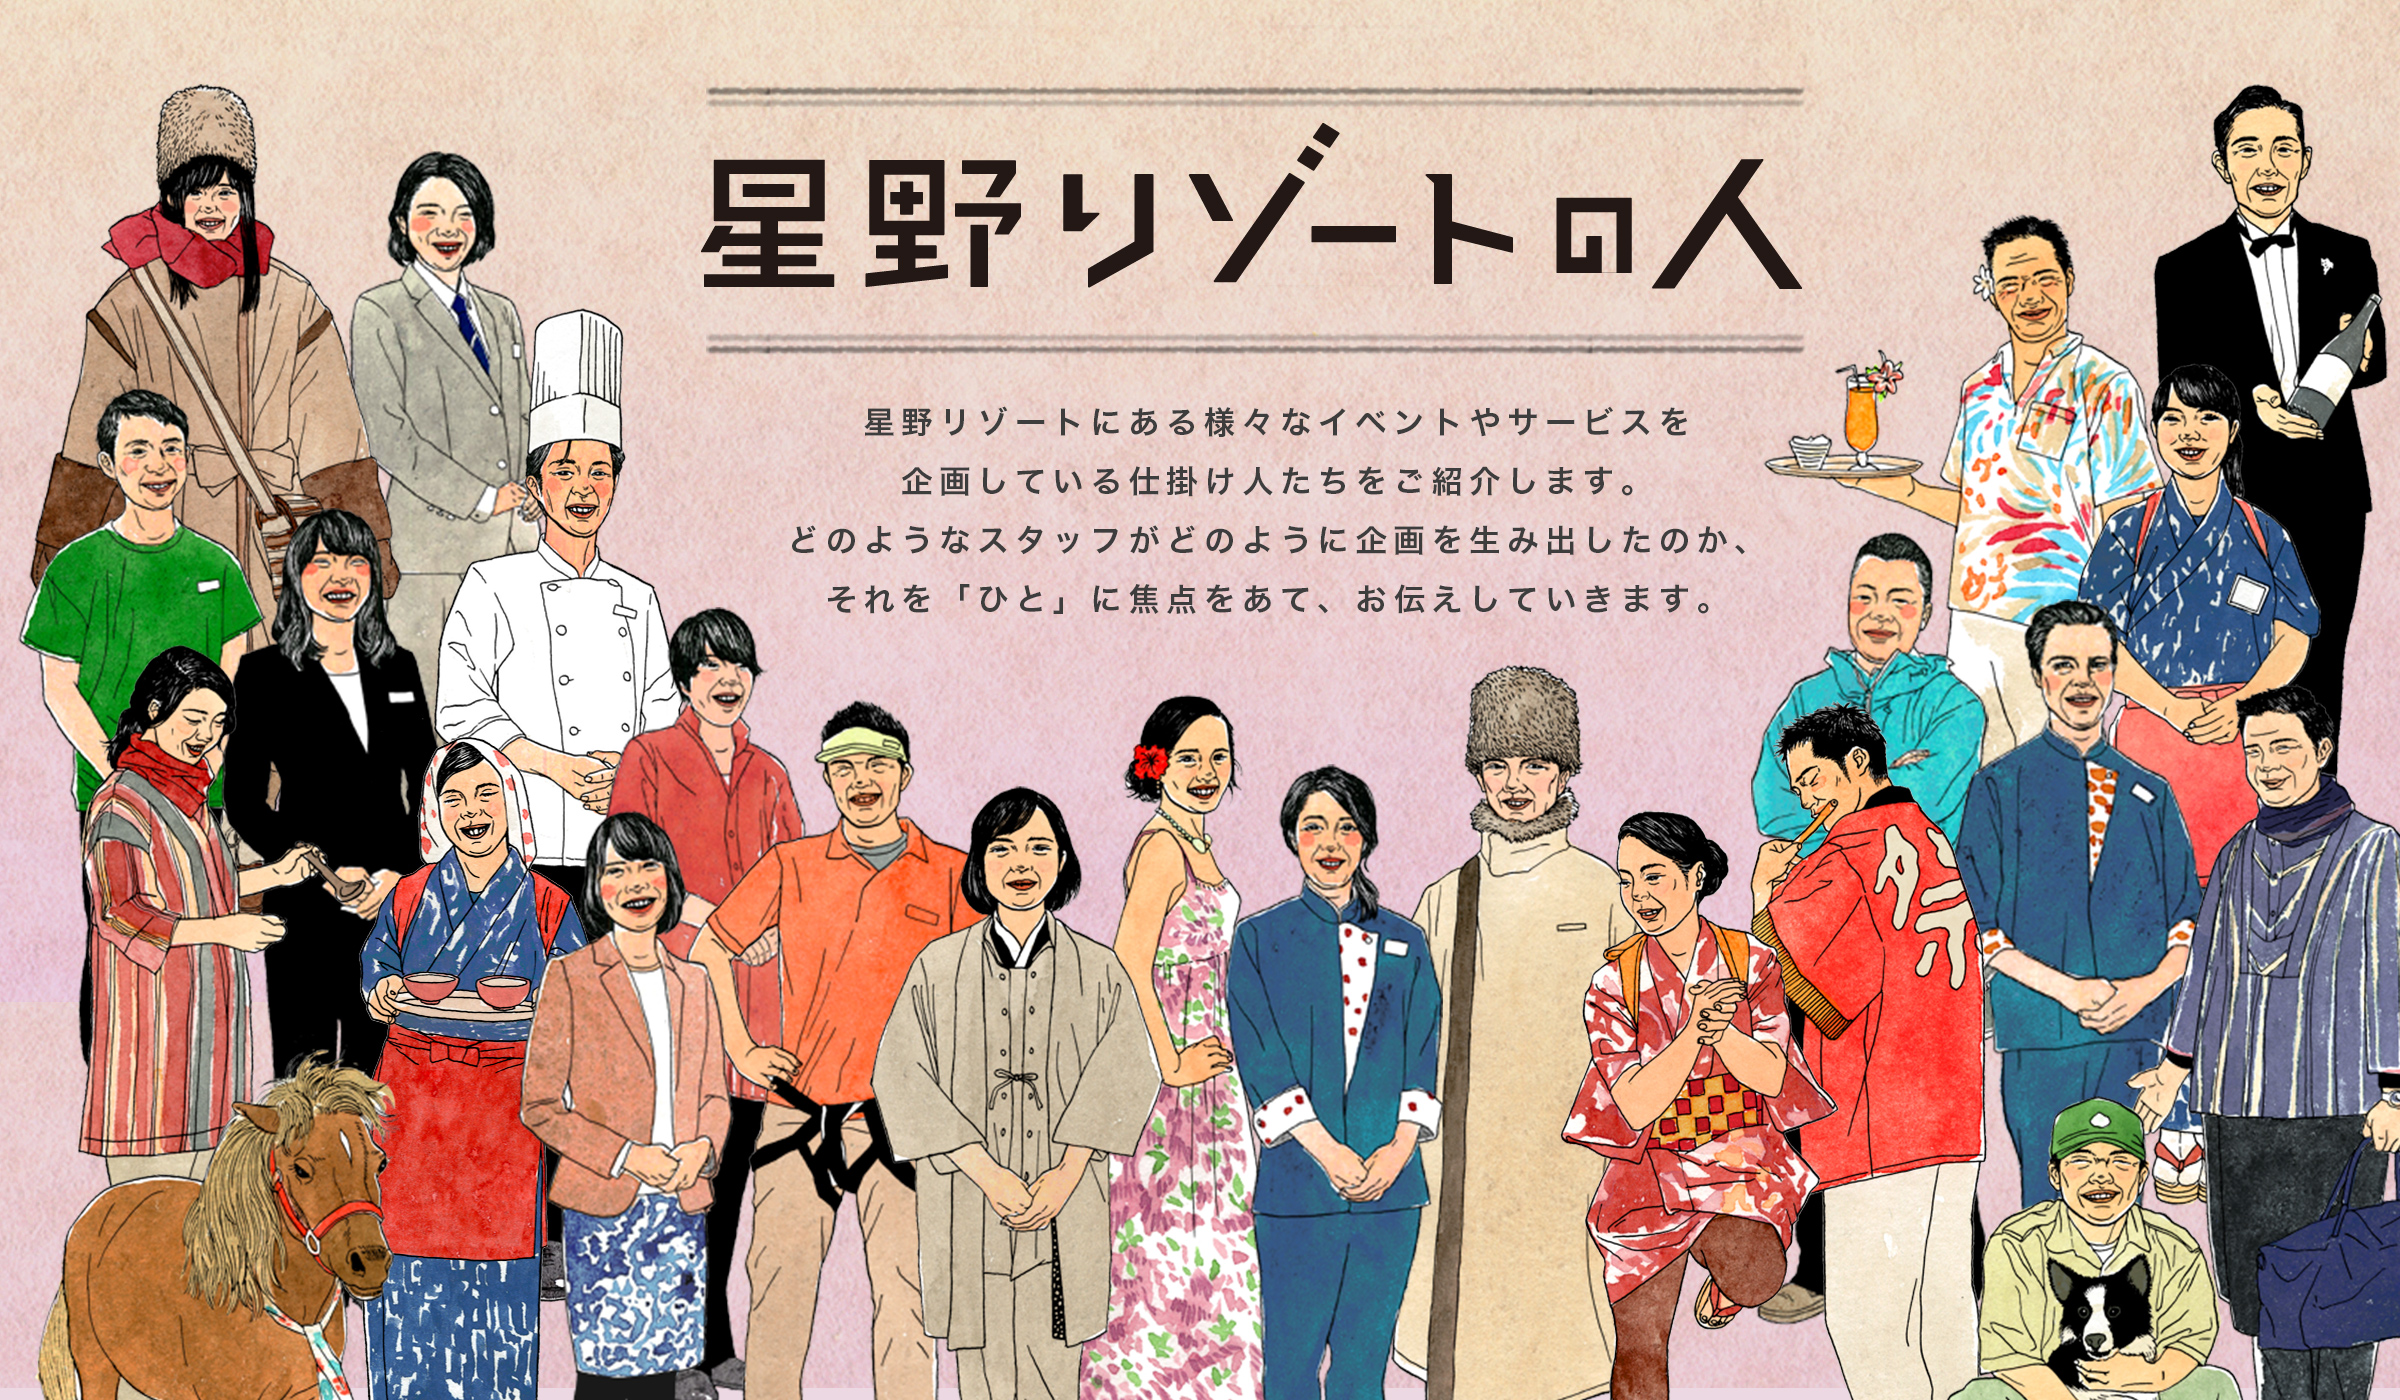 The people of Hoshino Resorts